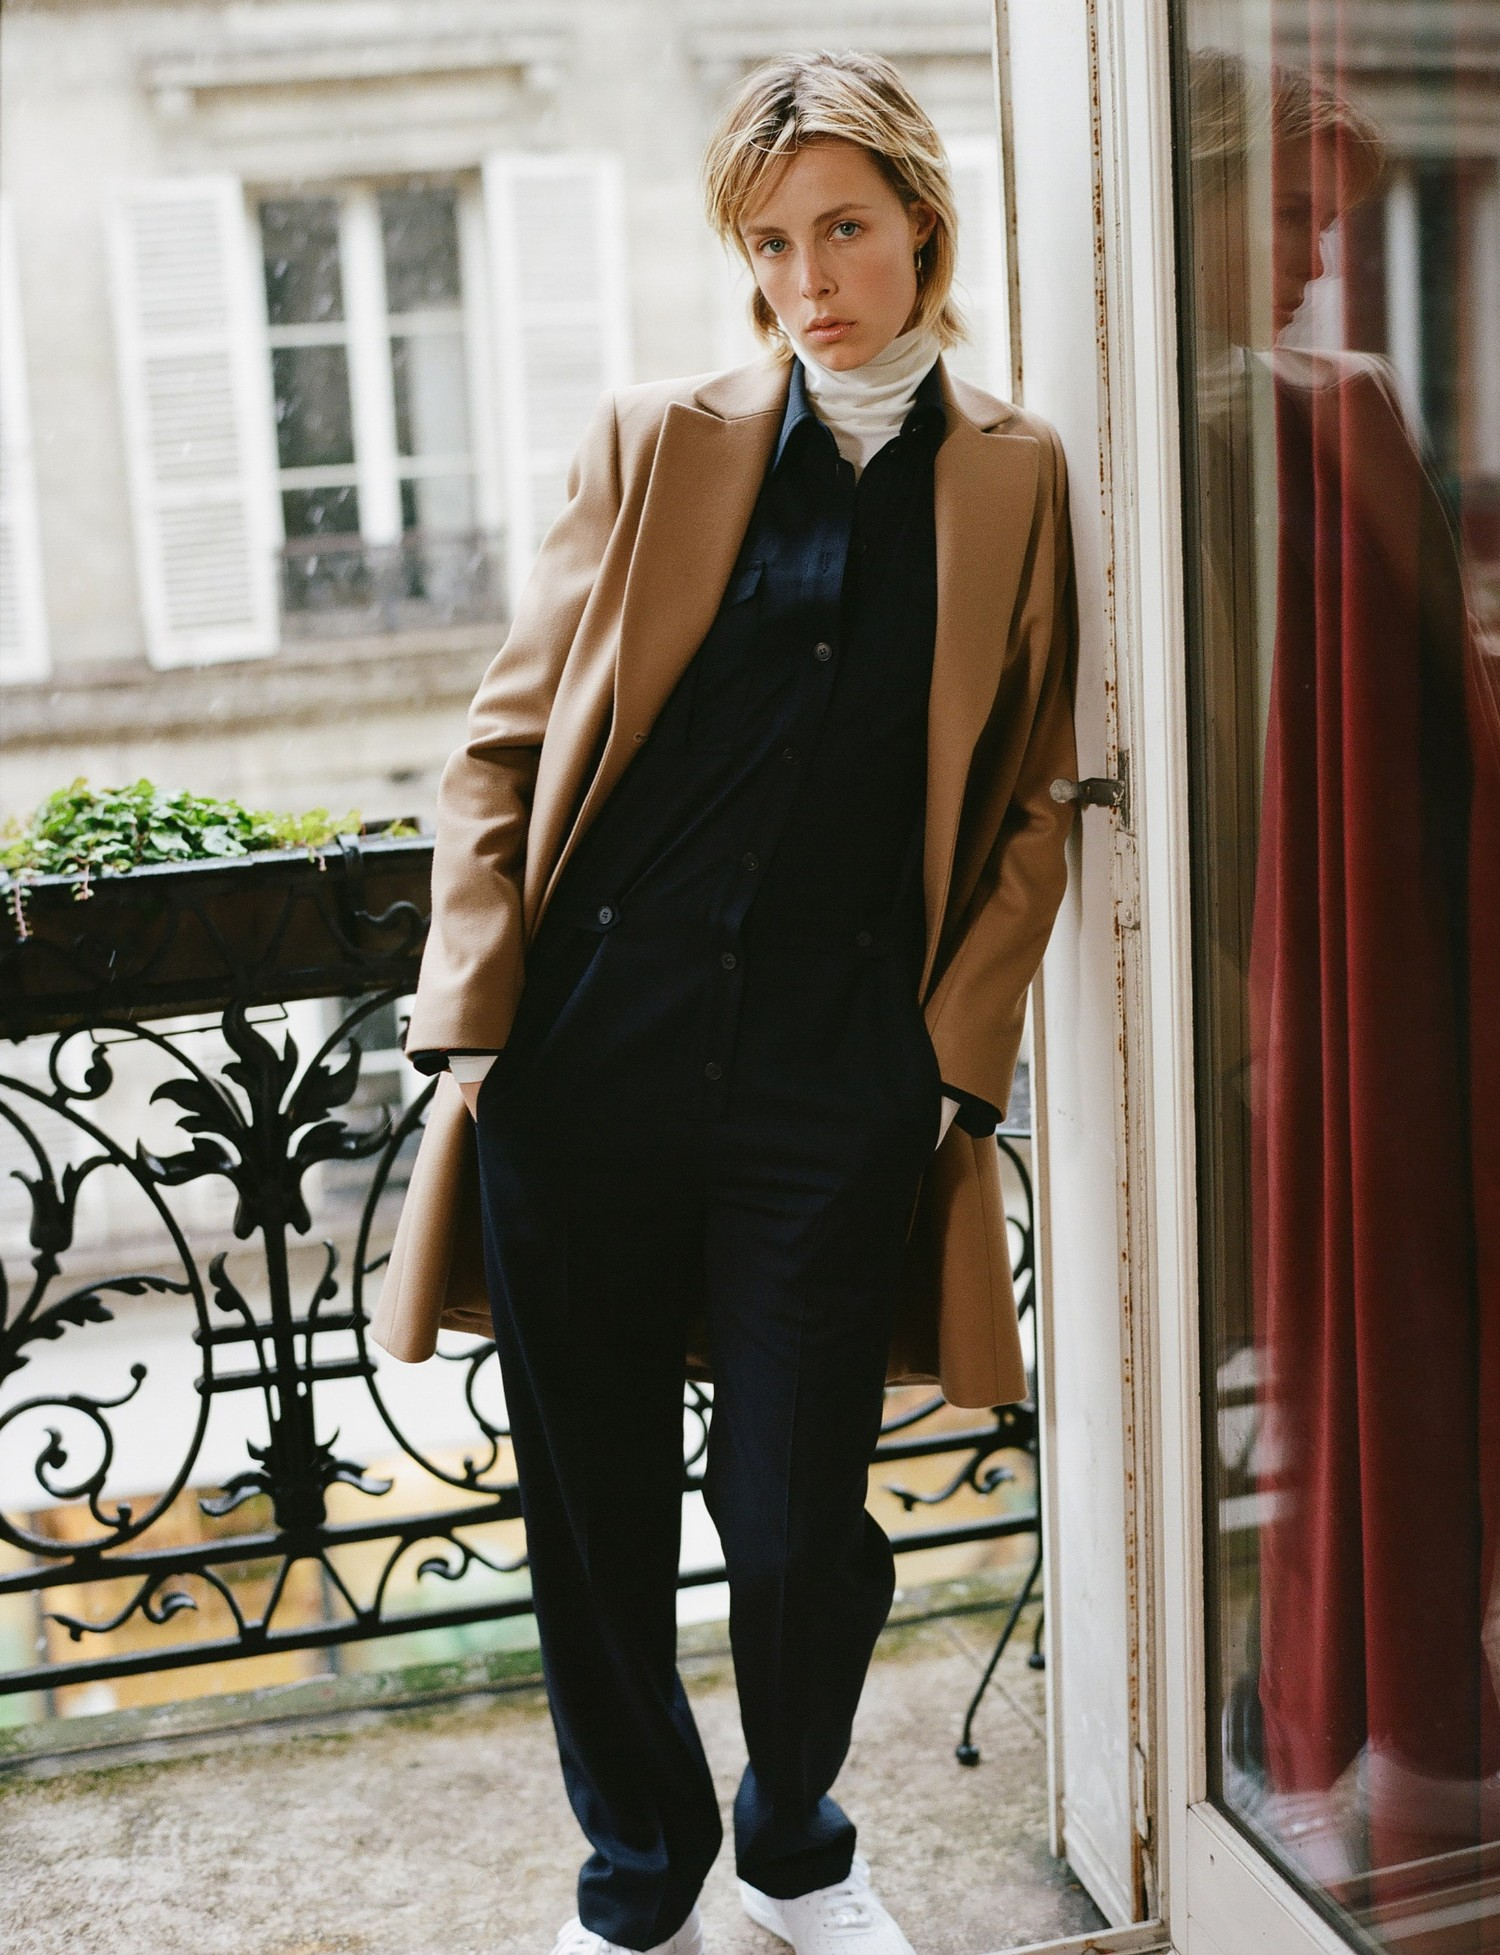 PALLAS PARIS x CLAIRE THOMSON-JONVILLE